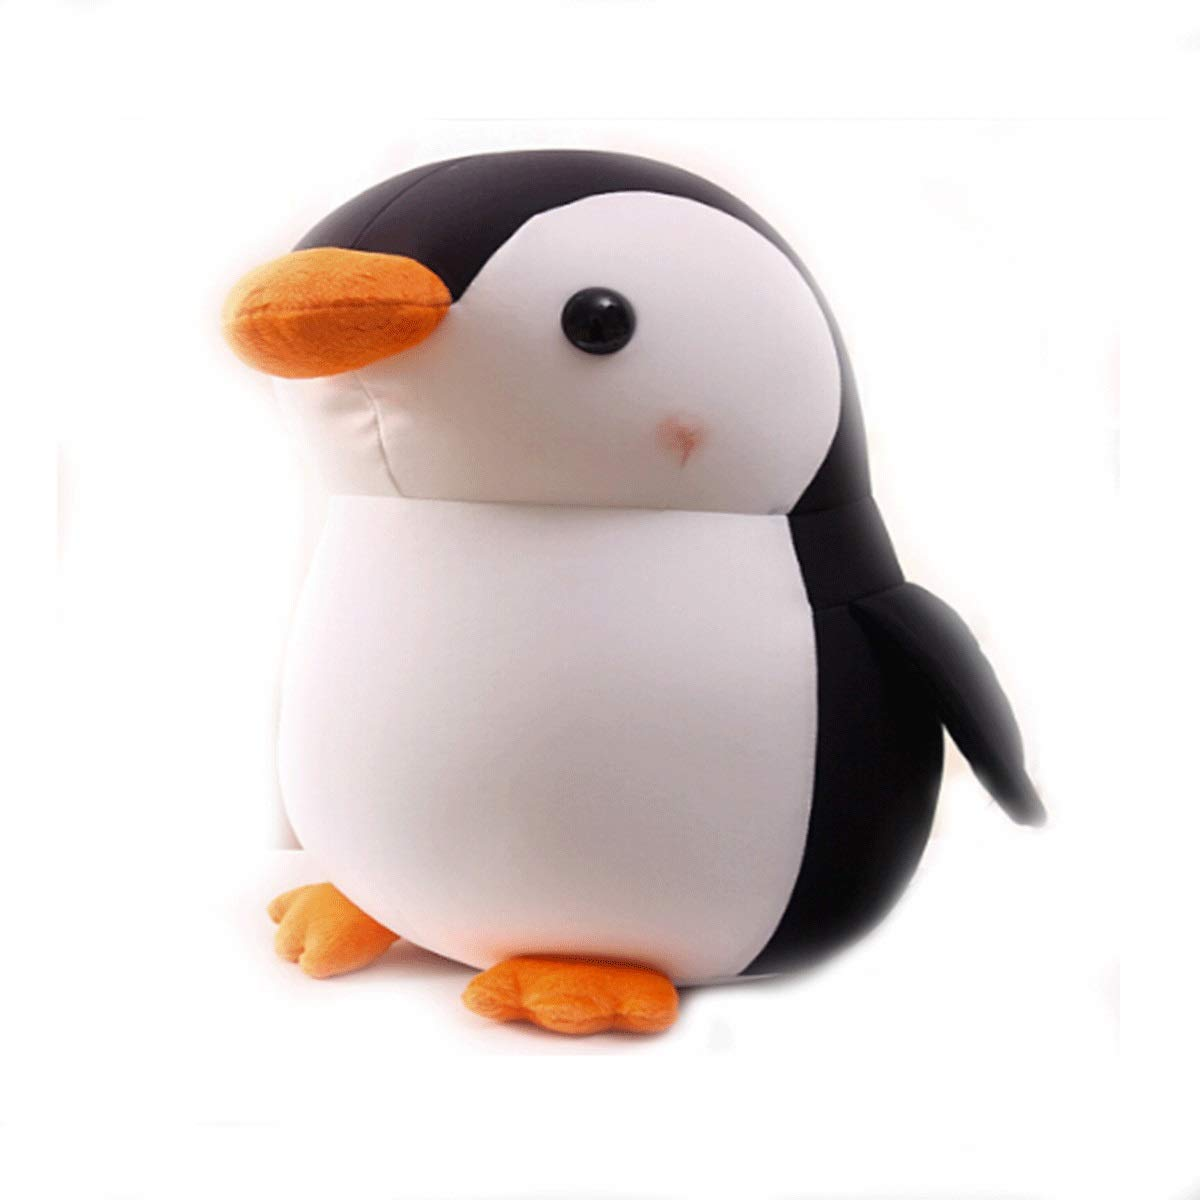 Penguin bredher 28cm Penguin bredher 28cm Xionghaizi Plush Toys, Little Penguin Plush Toys, Doll Pillows, Birthday Presents, Various Sizes, Best Gifts, Latest Models (Size   28cm, UnitCount   Penguin Bredher)